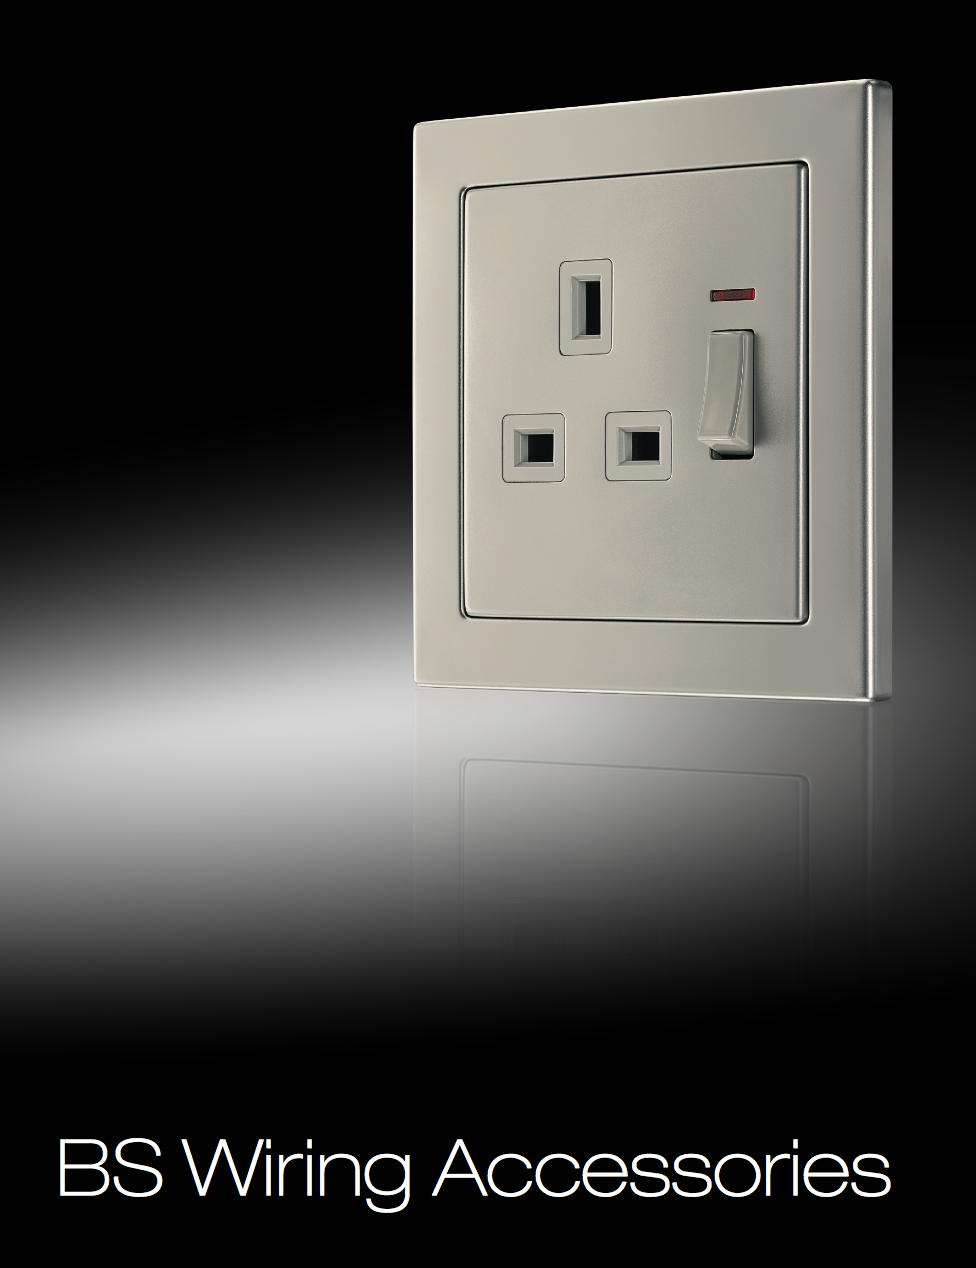 small resolution of  touch control design switches home control system home automation luxury home for interiors and architectures projects smart home homeautomation